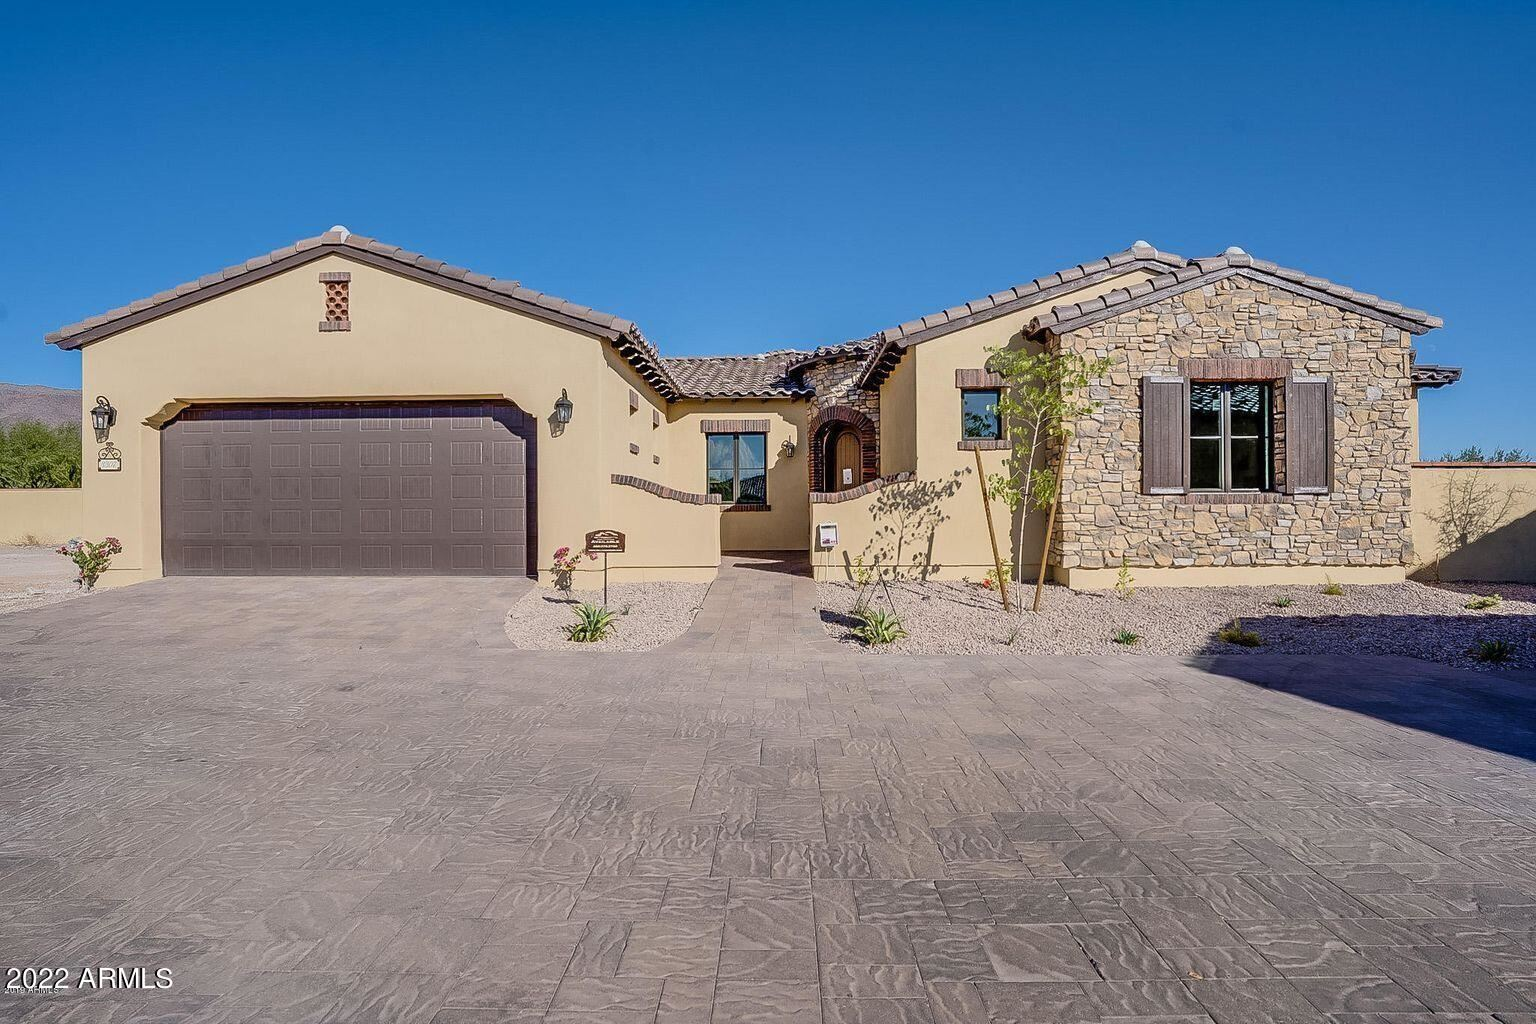 8330 E CLUB VILLAGE Drive, Gold Canyon, AZ 85118 - MLS#: 6116430